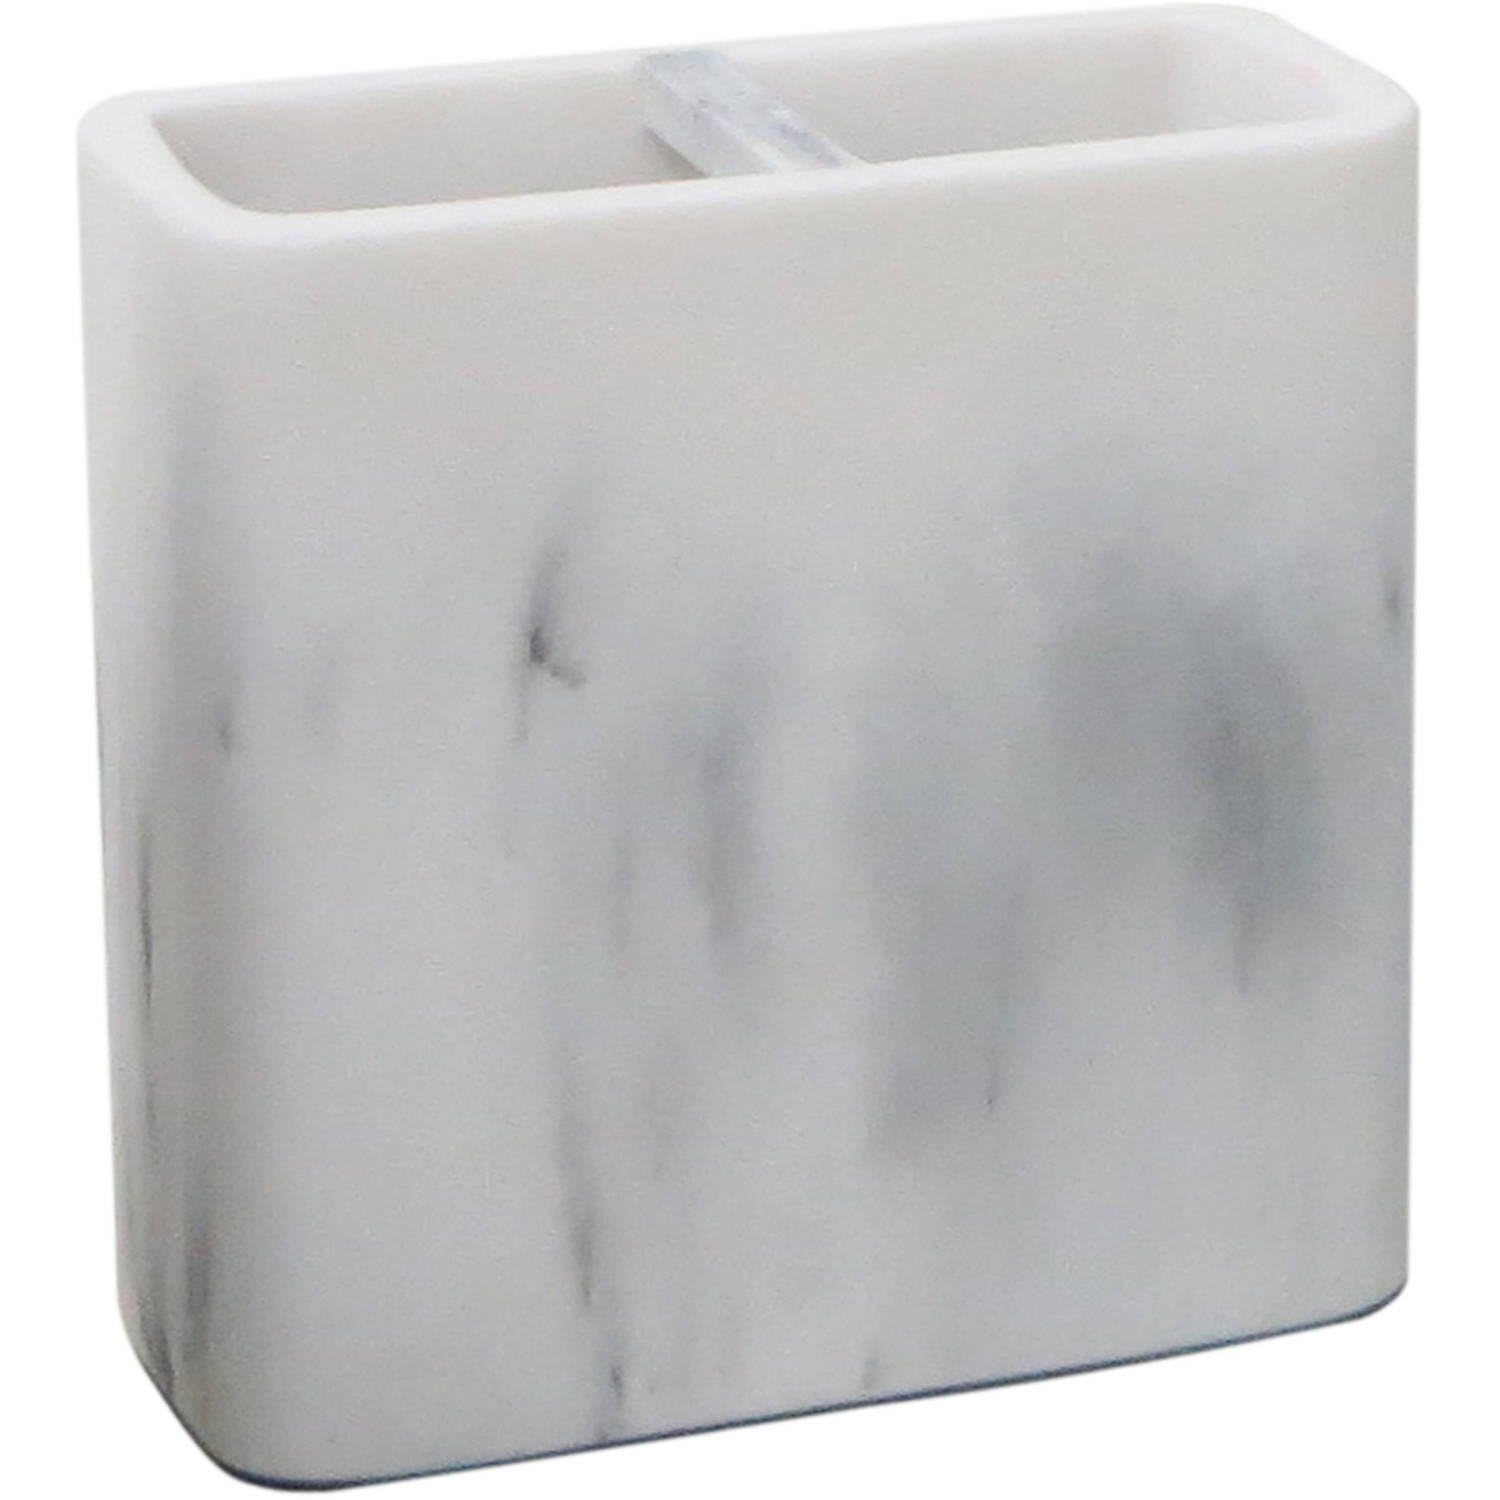 Better Homes and Gardens Marble Toothbrush Holder, White